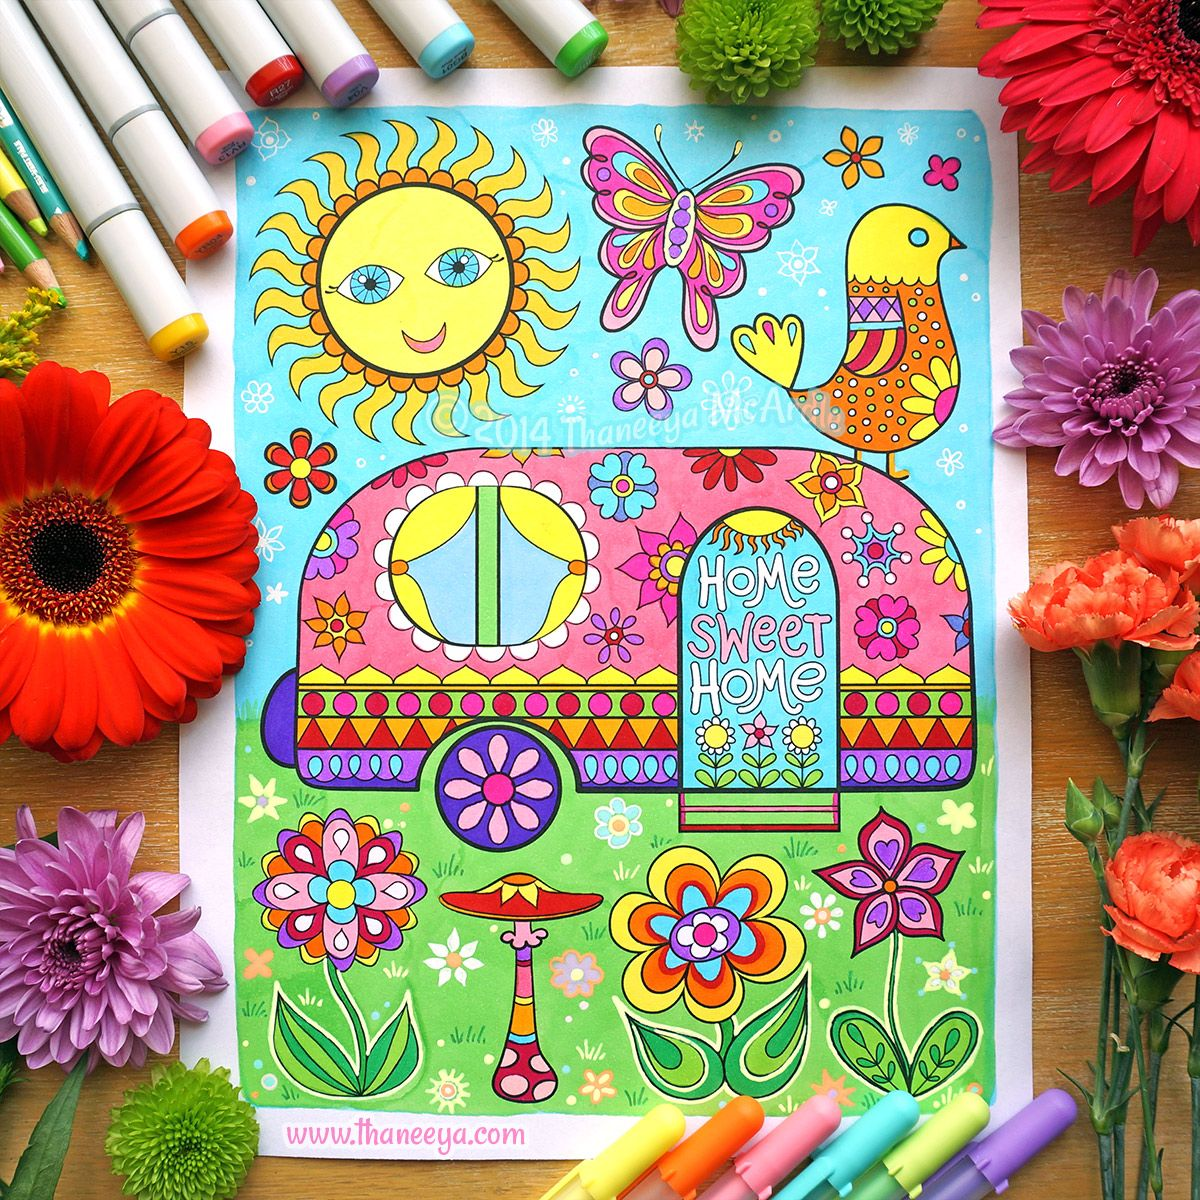 Free spirit coloring book by thaneeya mcardle coloring books by - Art From Happy Campers Coloring Book By Thaneeya Mcardle Http Www Amazon